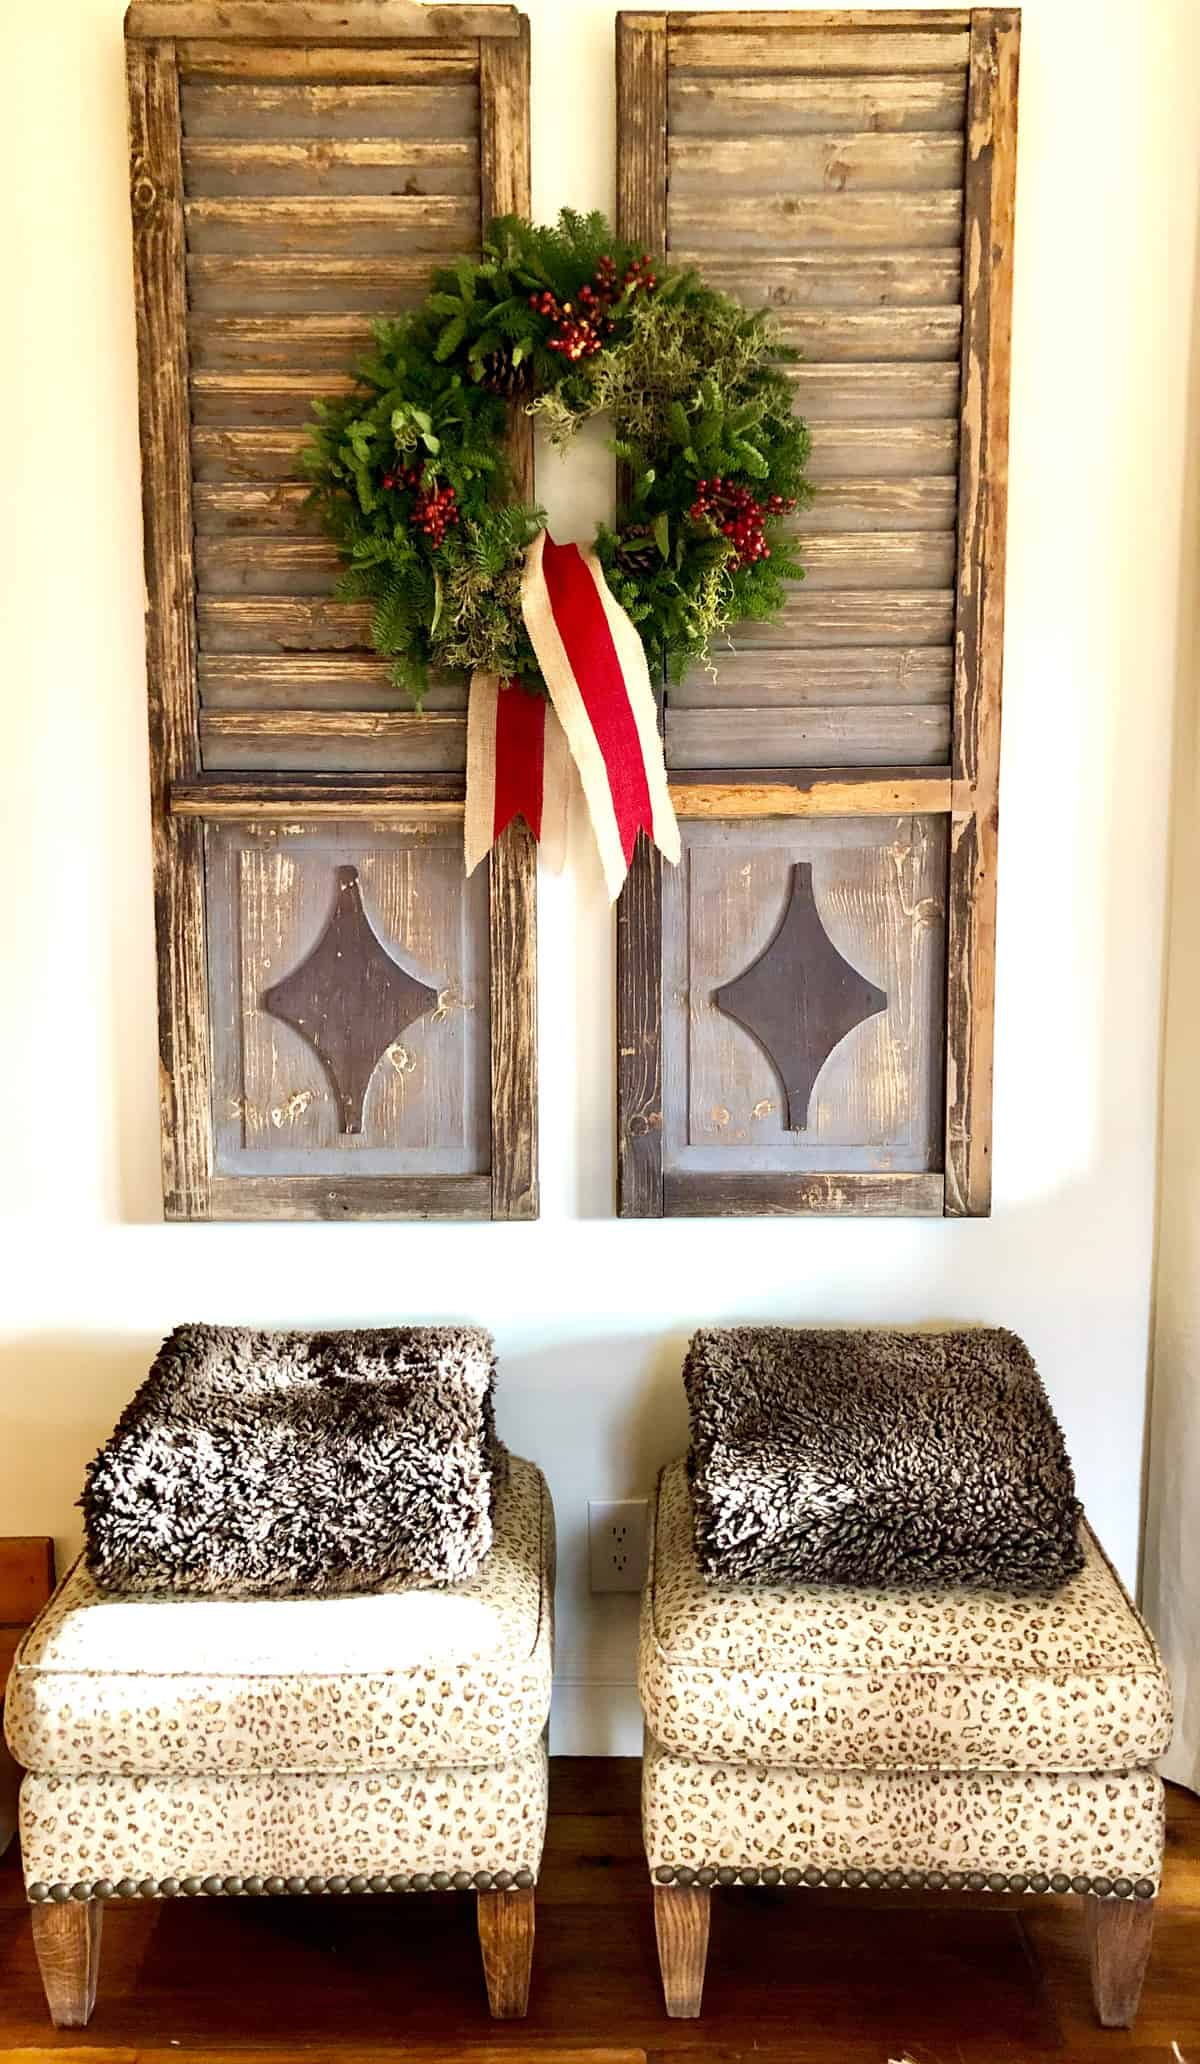 vintage shutters with wreath